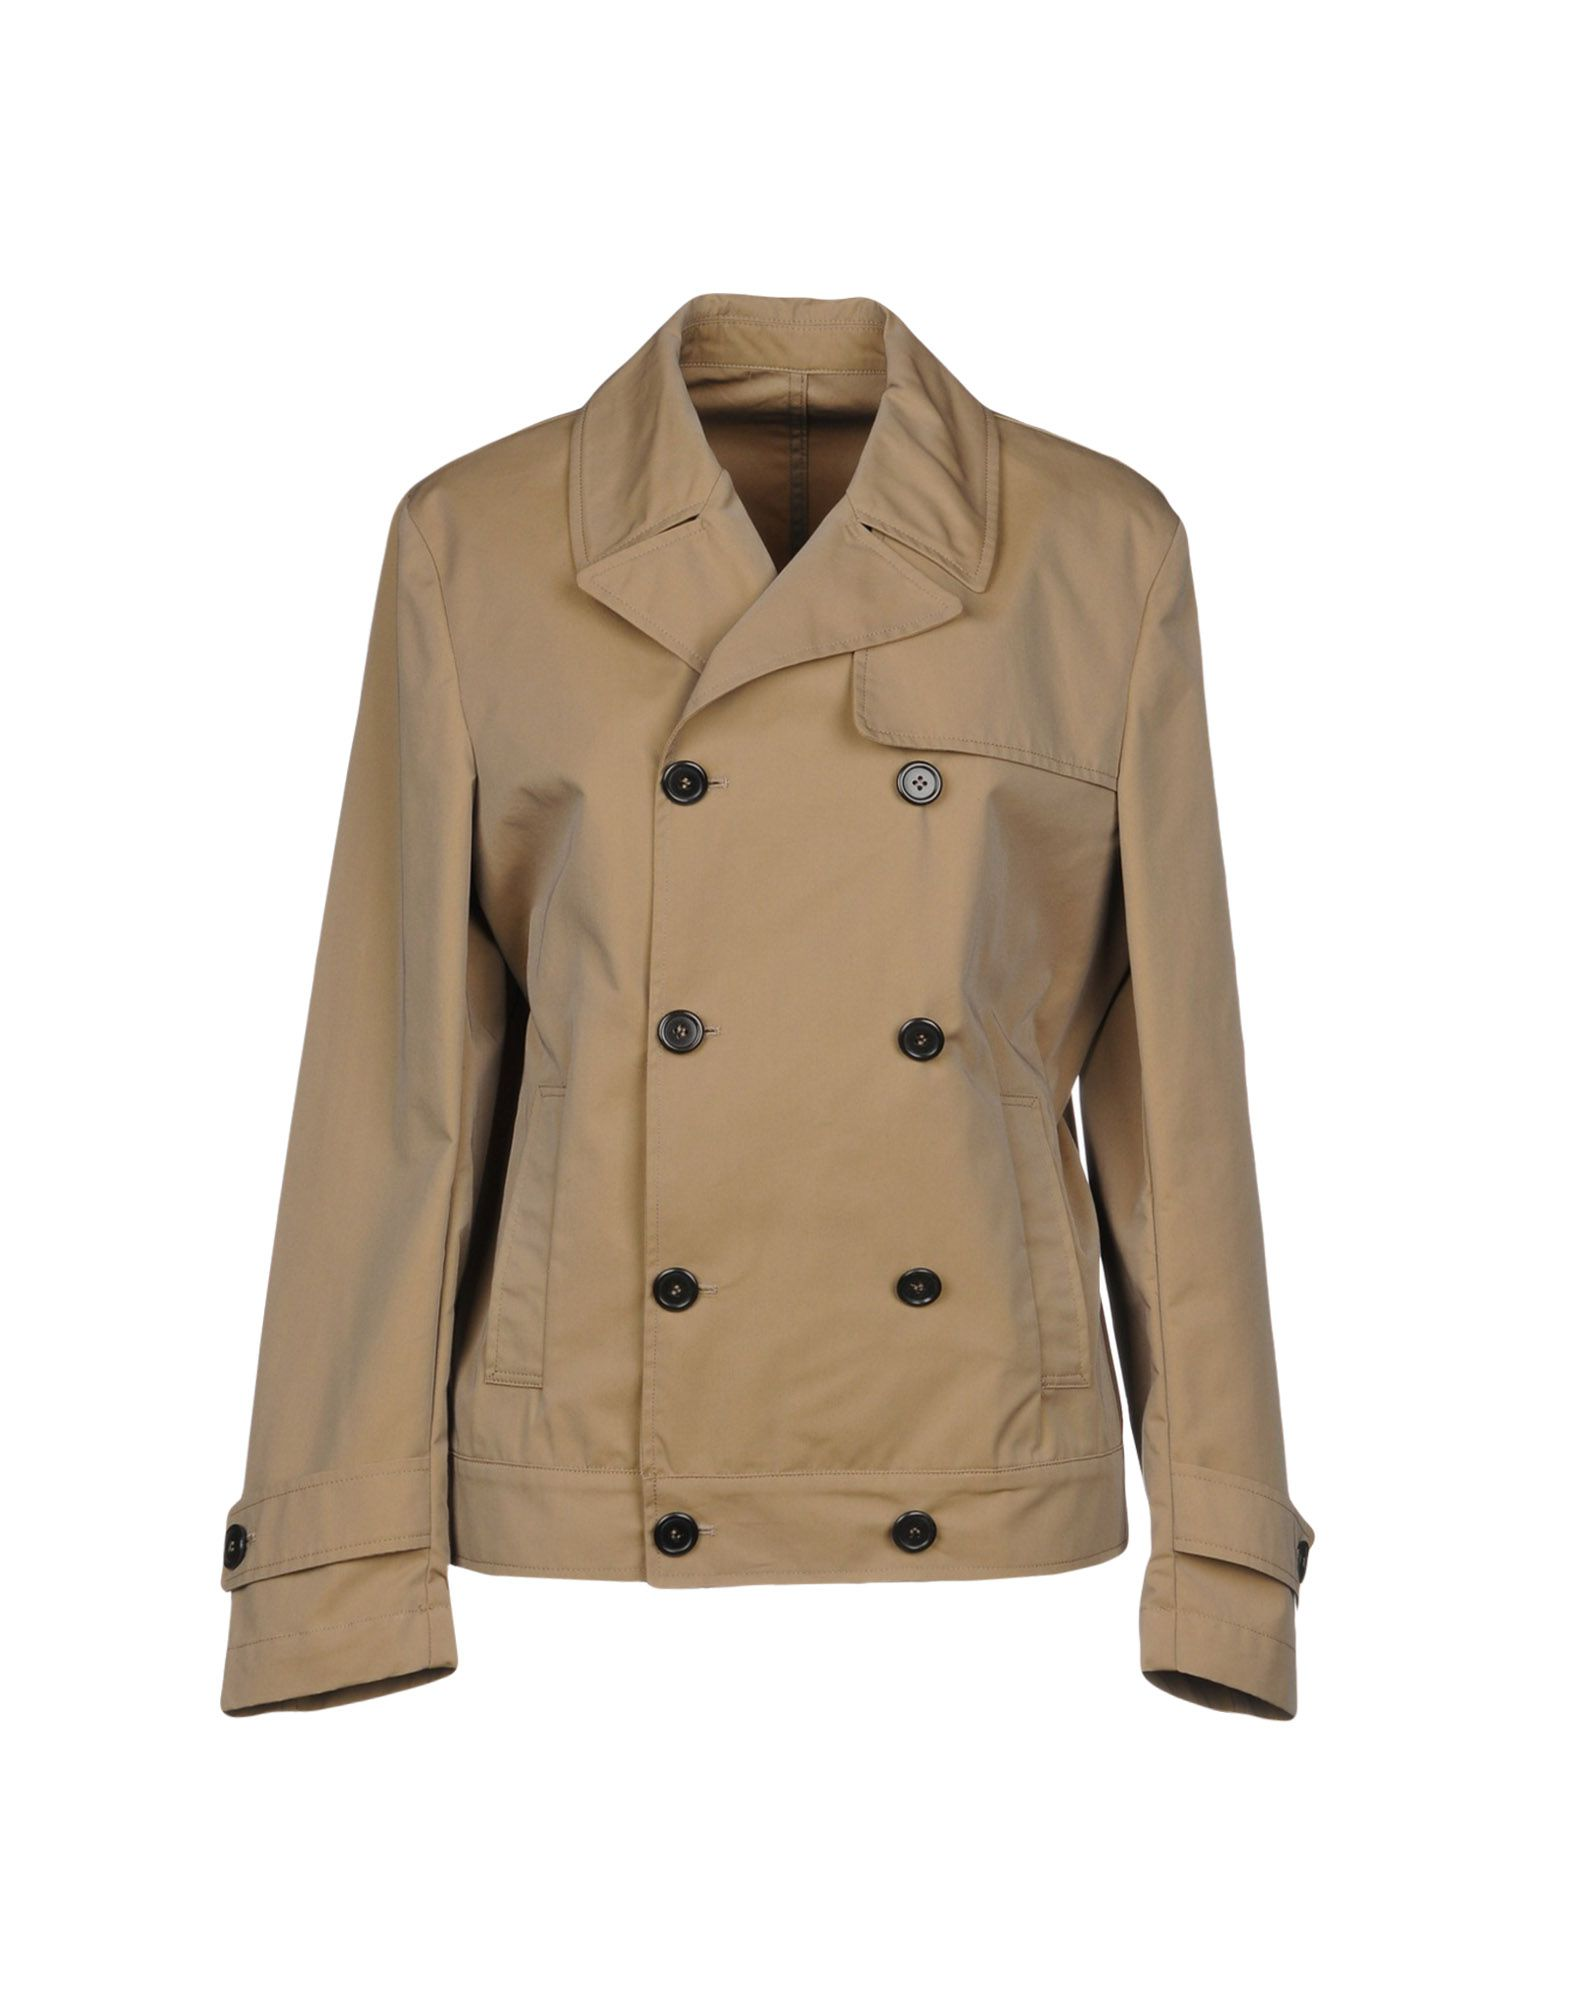 AGLINI Double Breasted Pea Coat in Khaki